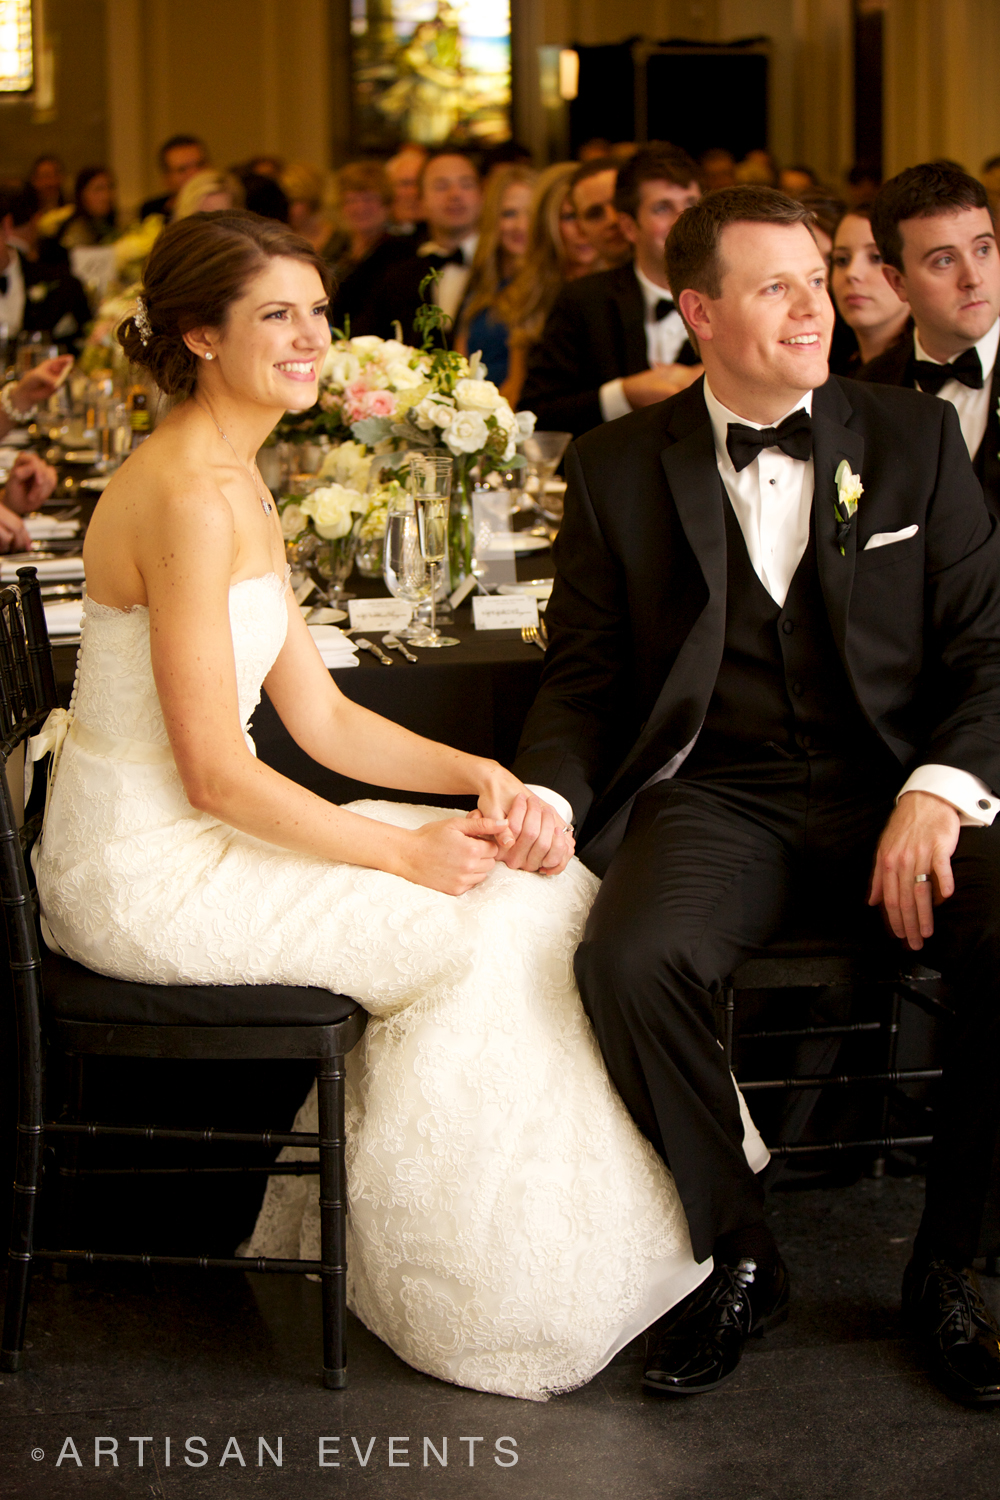 0947_ArtisanEvents_Chicago_Wedding_Kahler.jpg